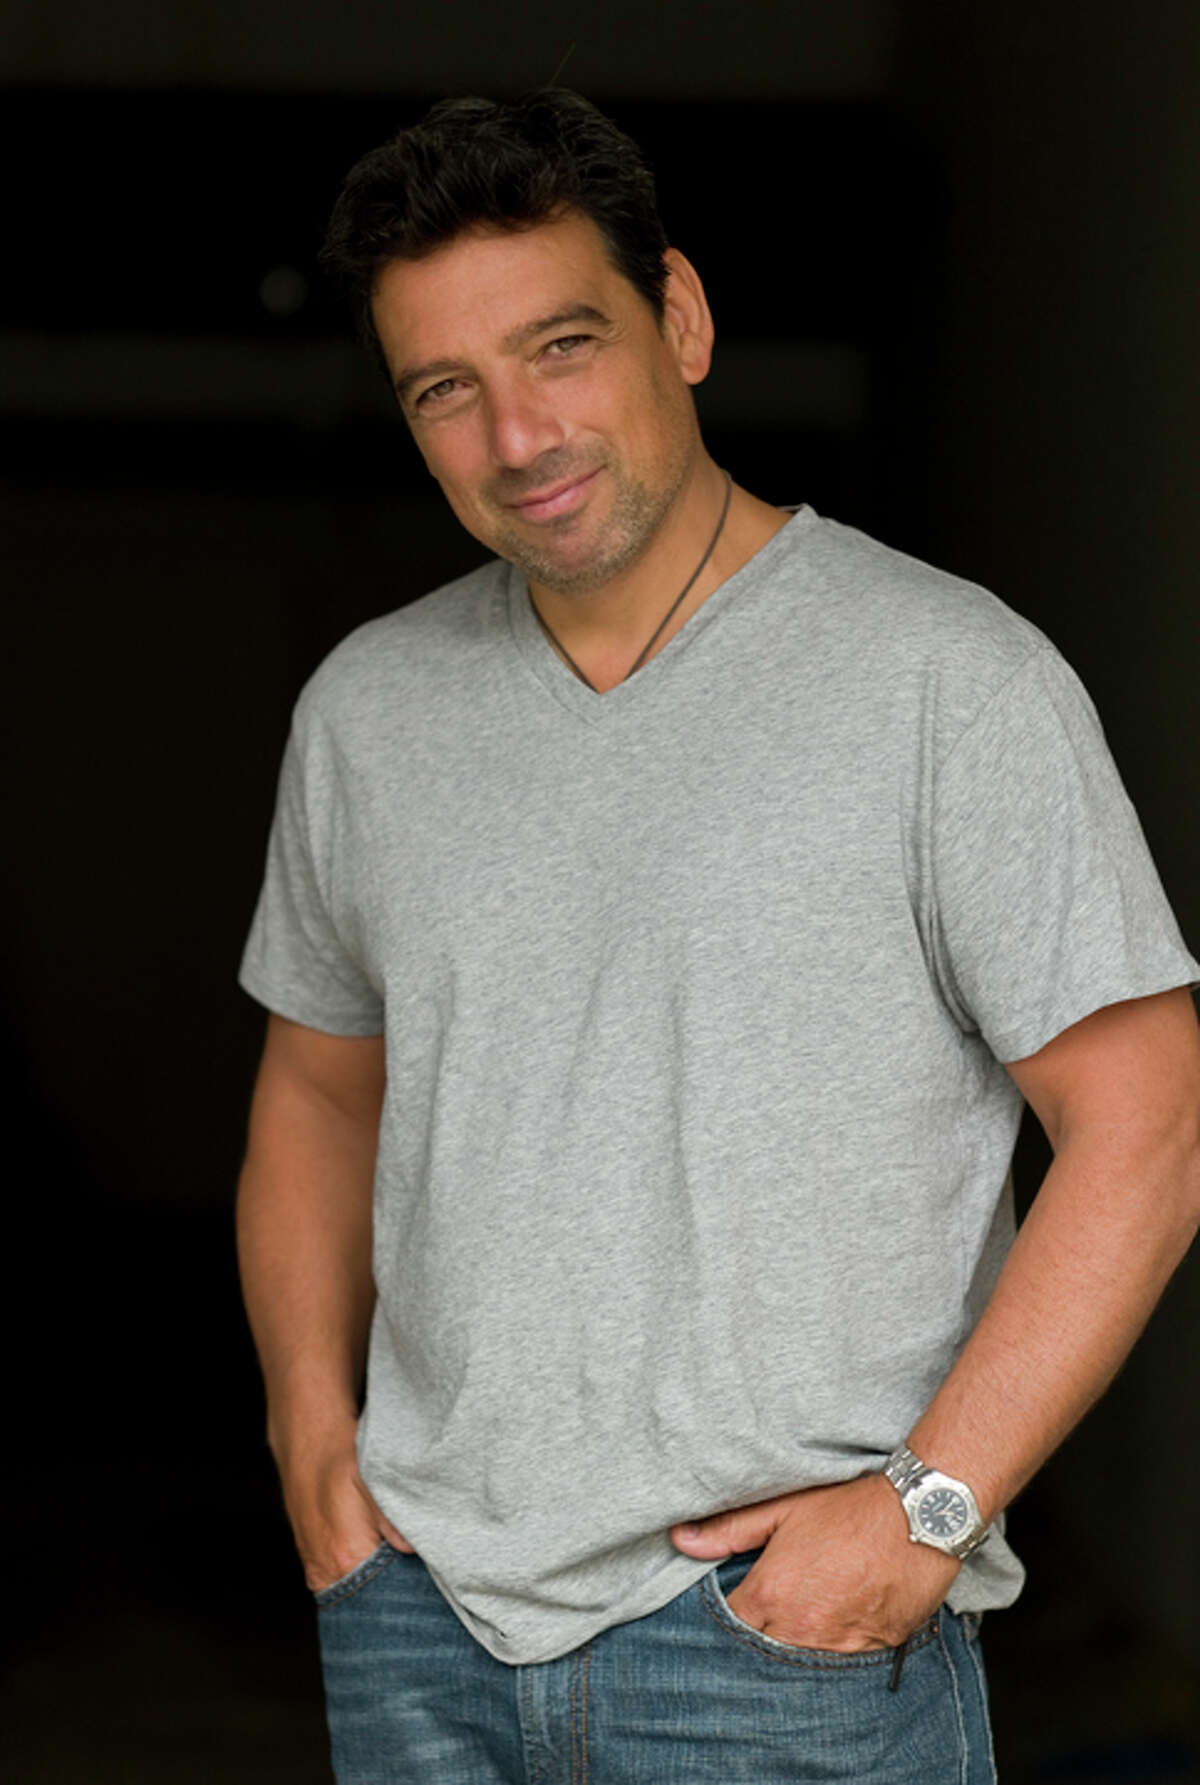 DIY Network star and licensed contractor John DeSilvia will lead workshops Saturday and Sunday.